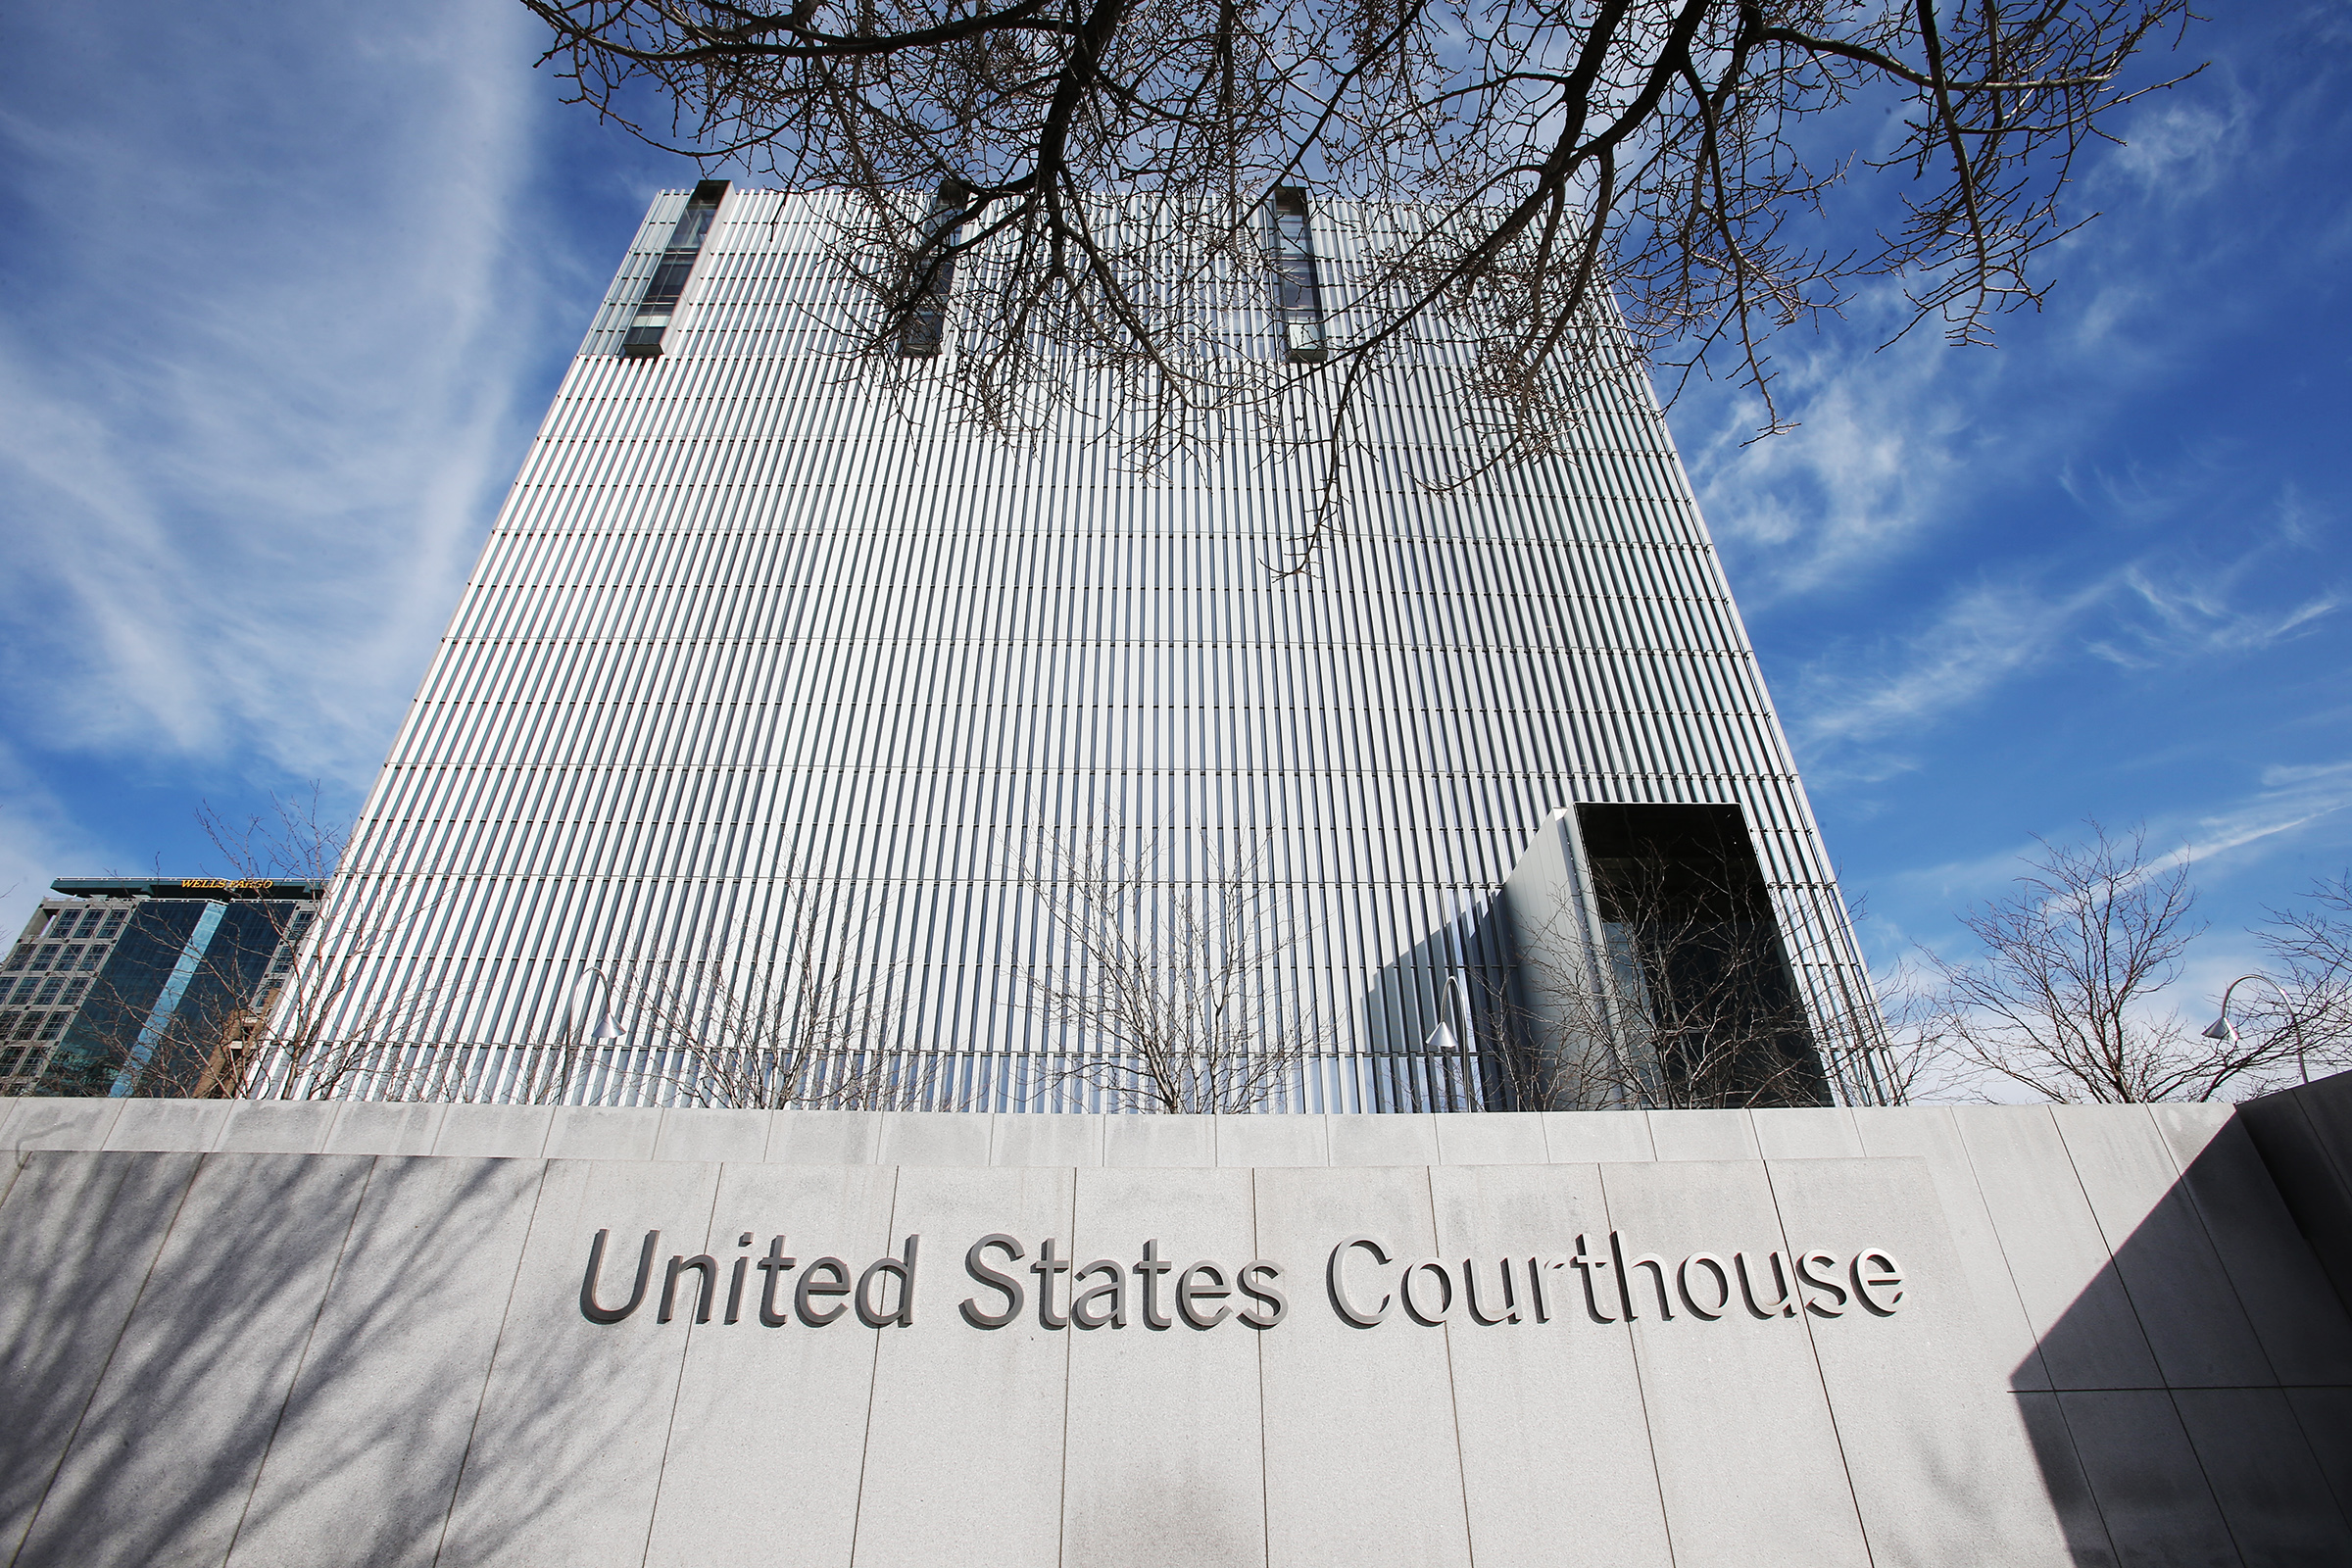 The federal courthouse in Salt Lake City is pictured on Tuesday, Feb. 18, 2020.